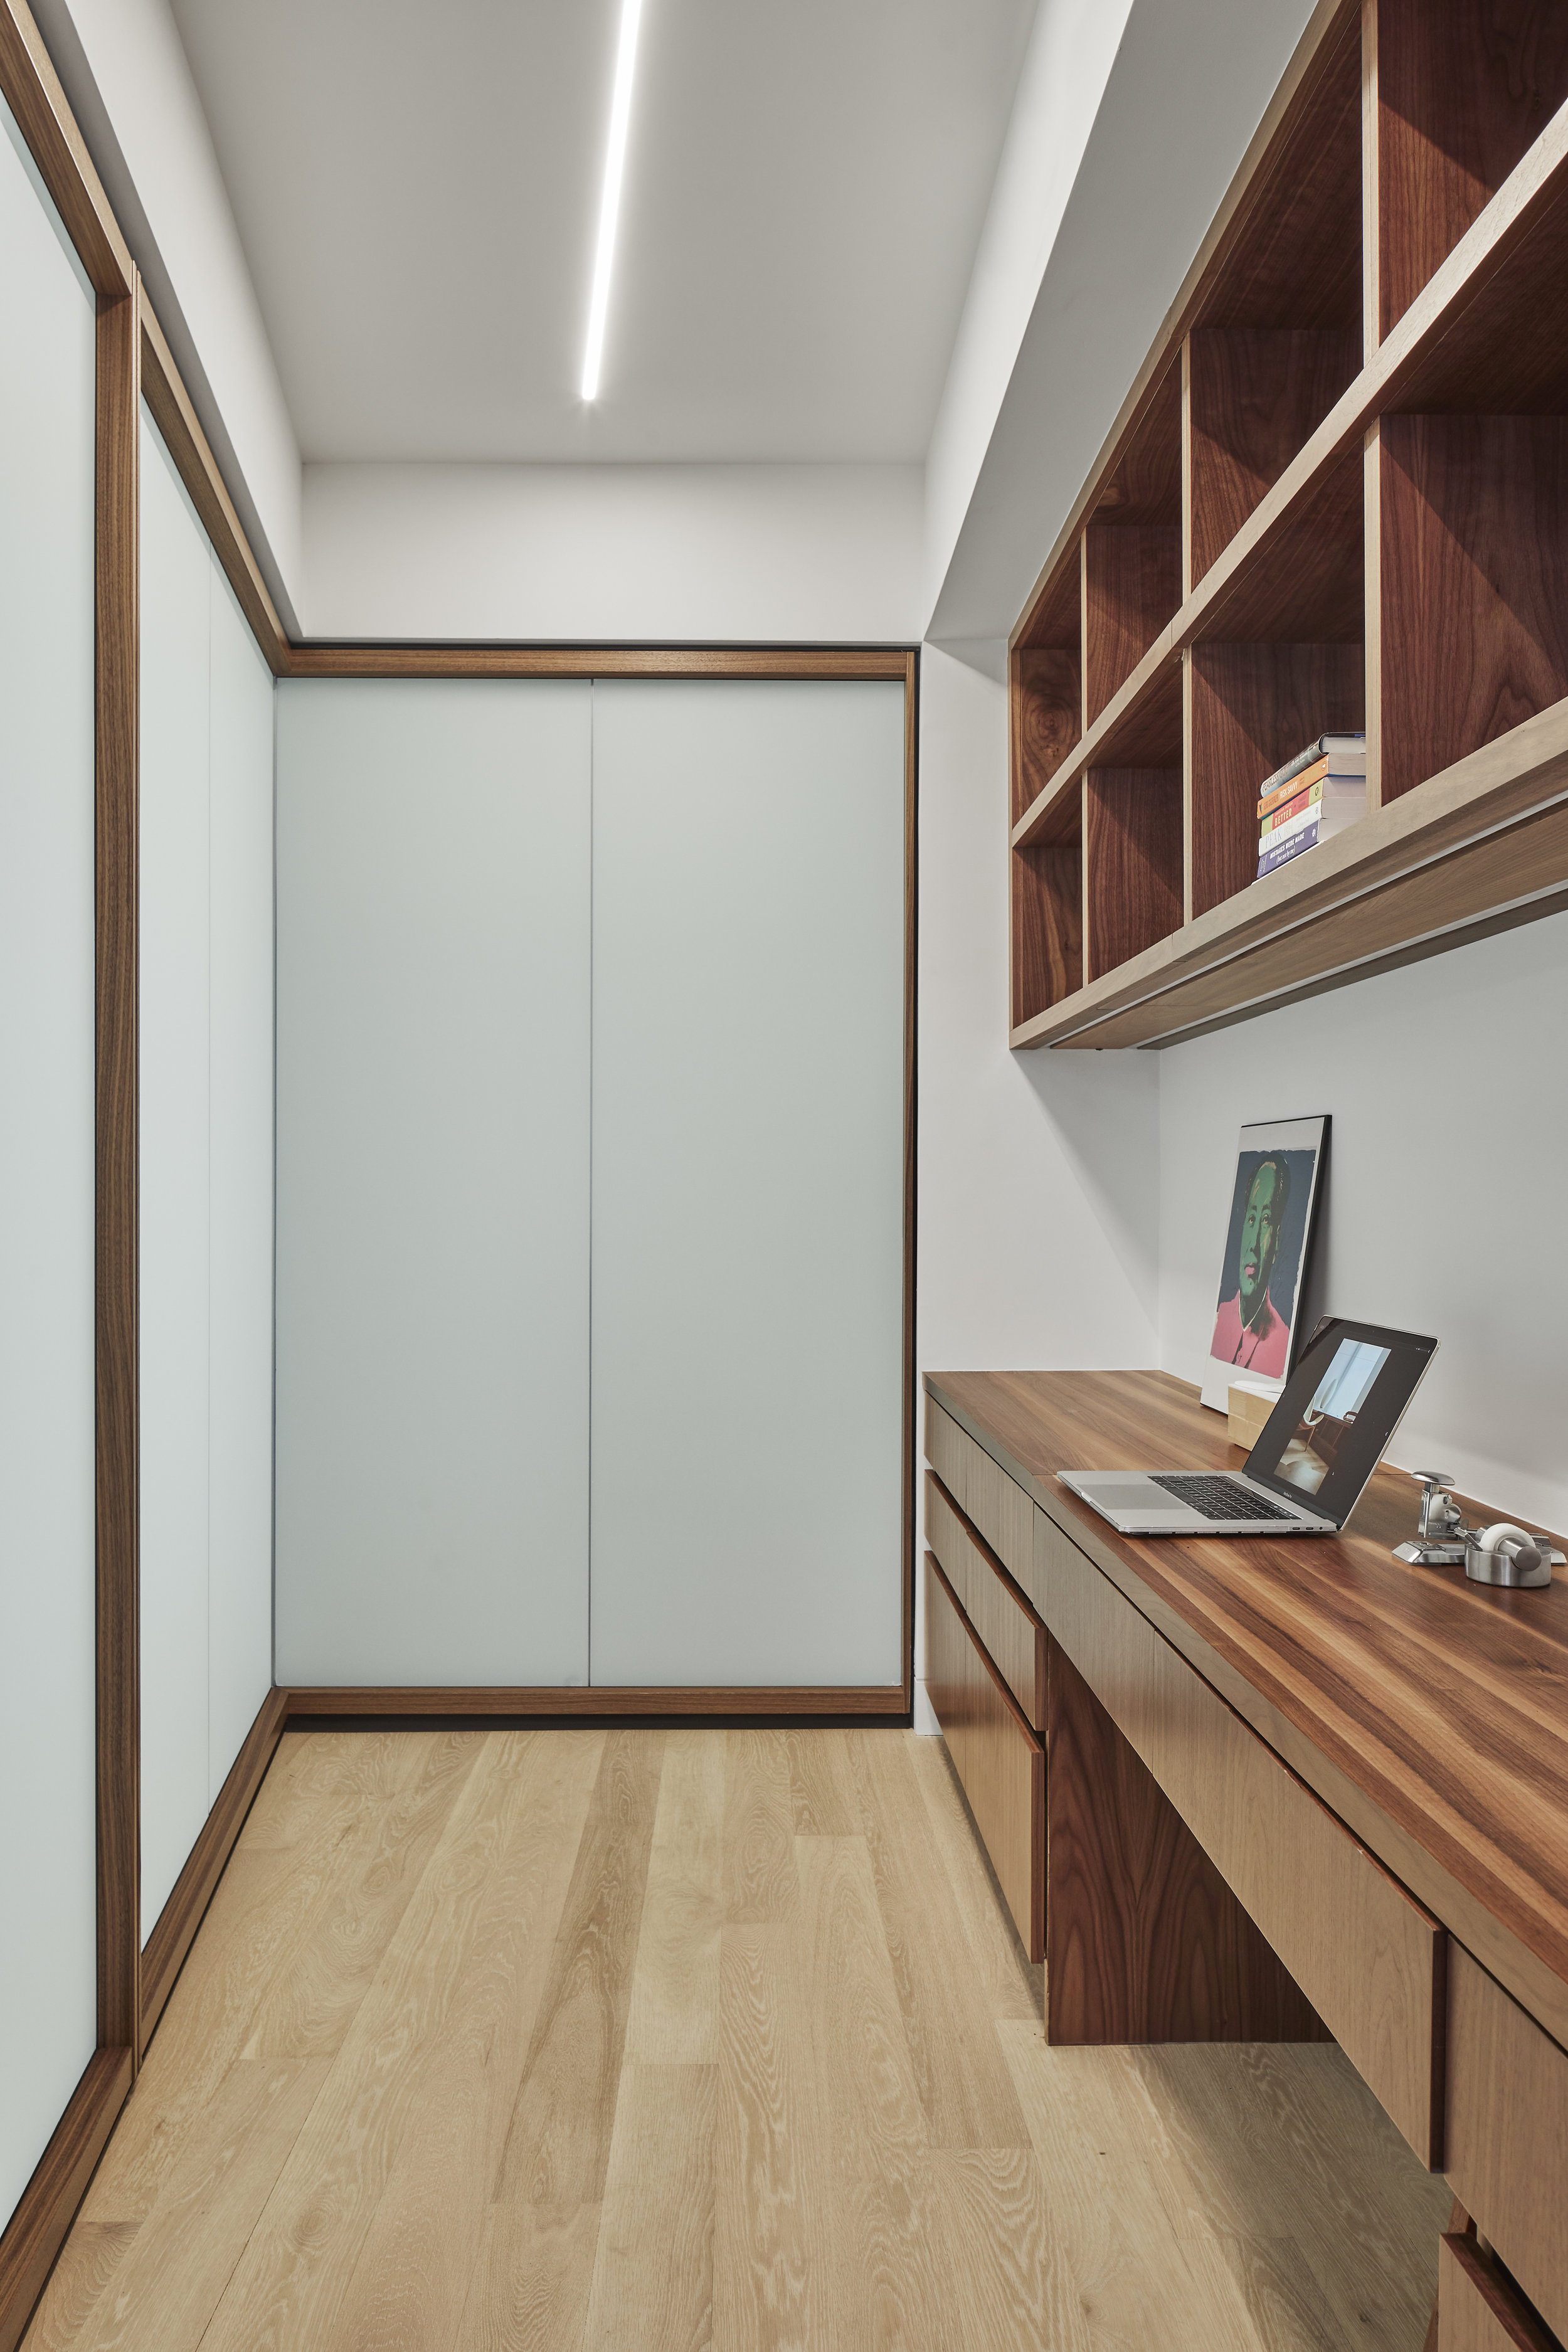 turkel_modern_design_prefab_home_soho_loft_office.jpg